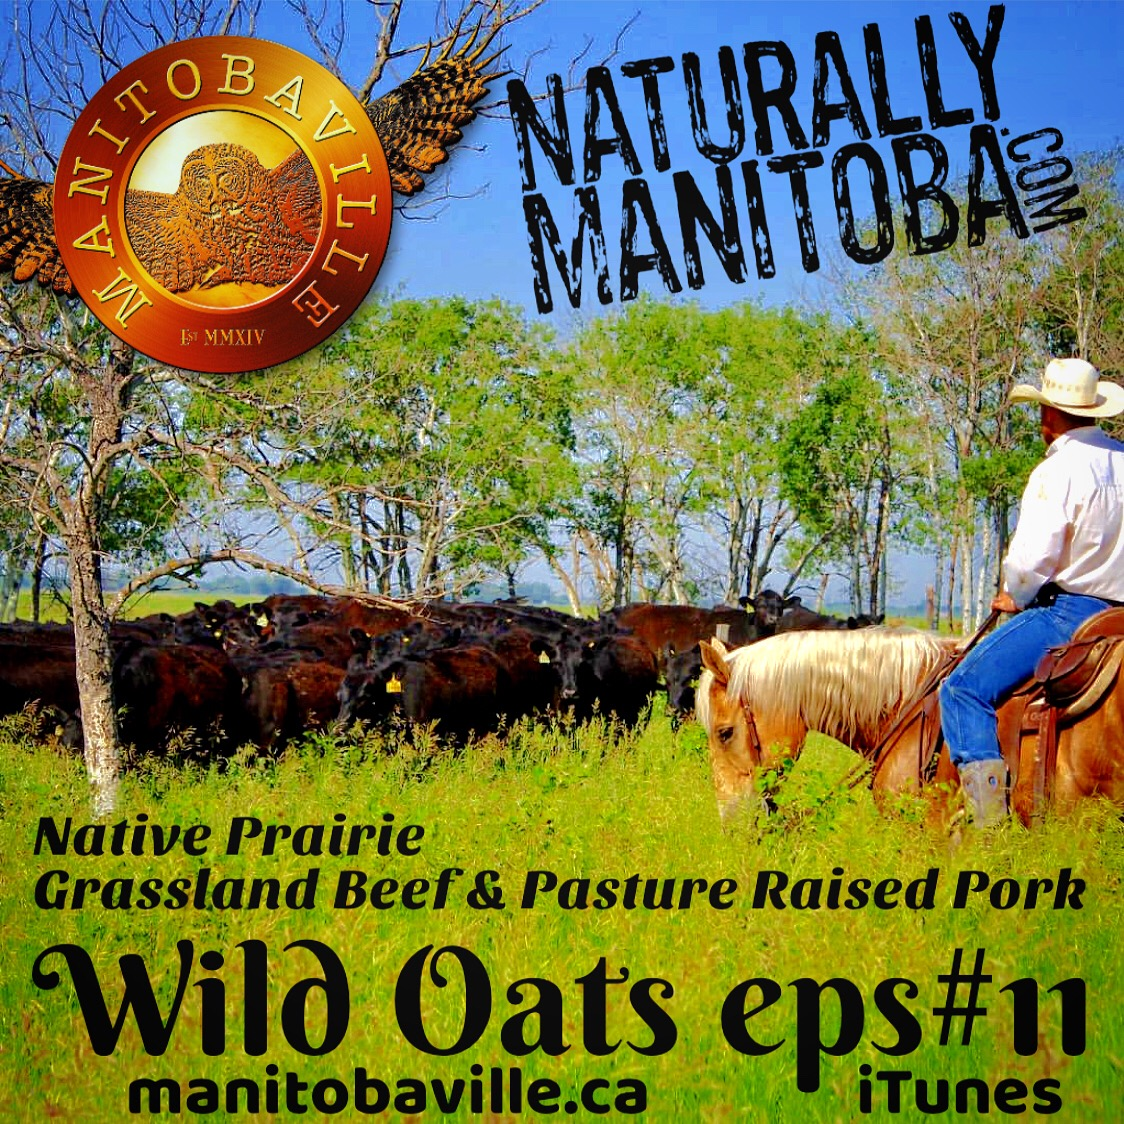 manitobaville podcast naturally manitoba native prairie grassland beef and pasture raised pork wild oats podcast episode #11.JPG